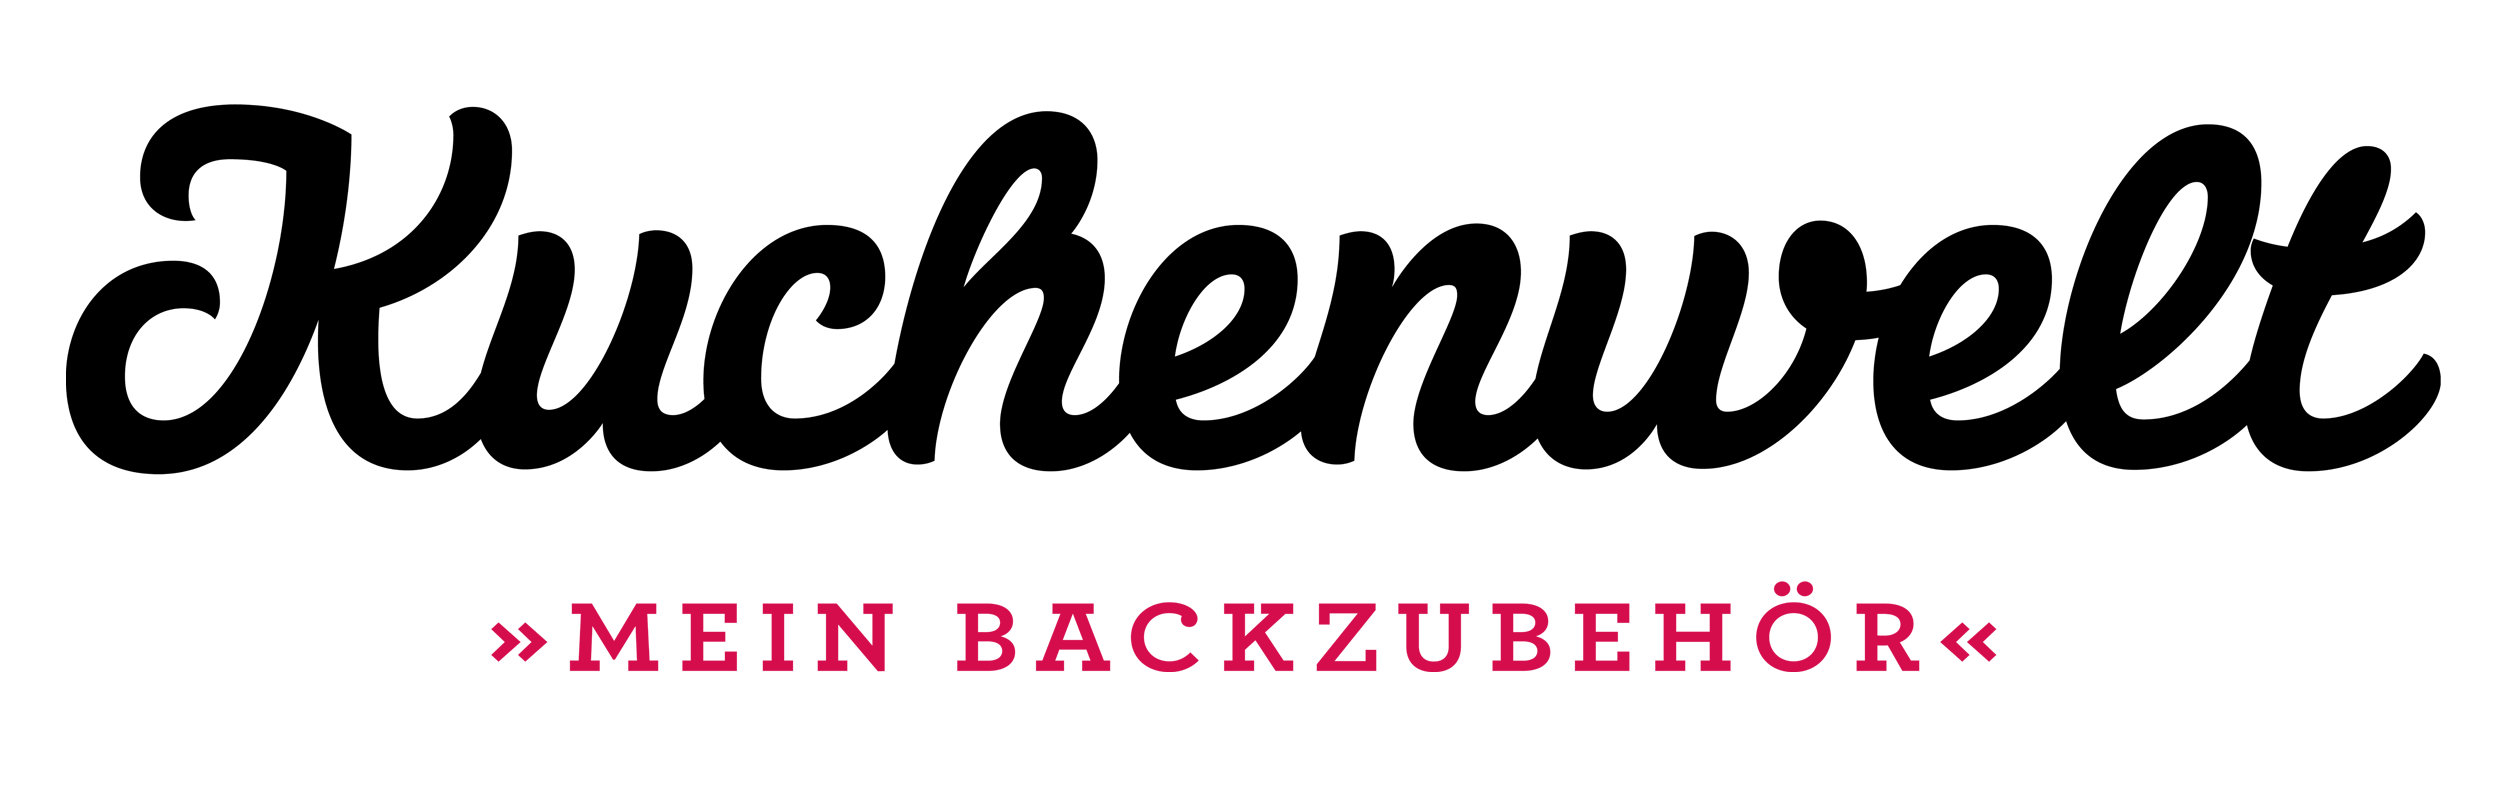 Kuchenwelt - Mein Backzubehör-Logo